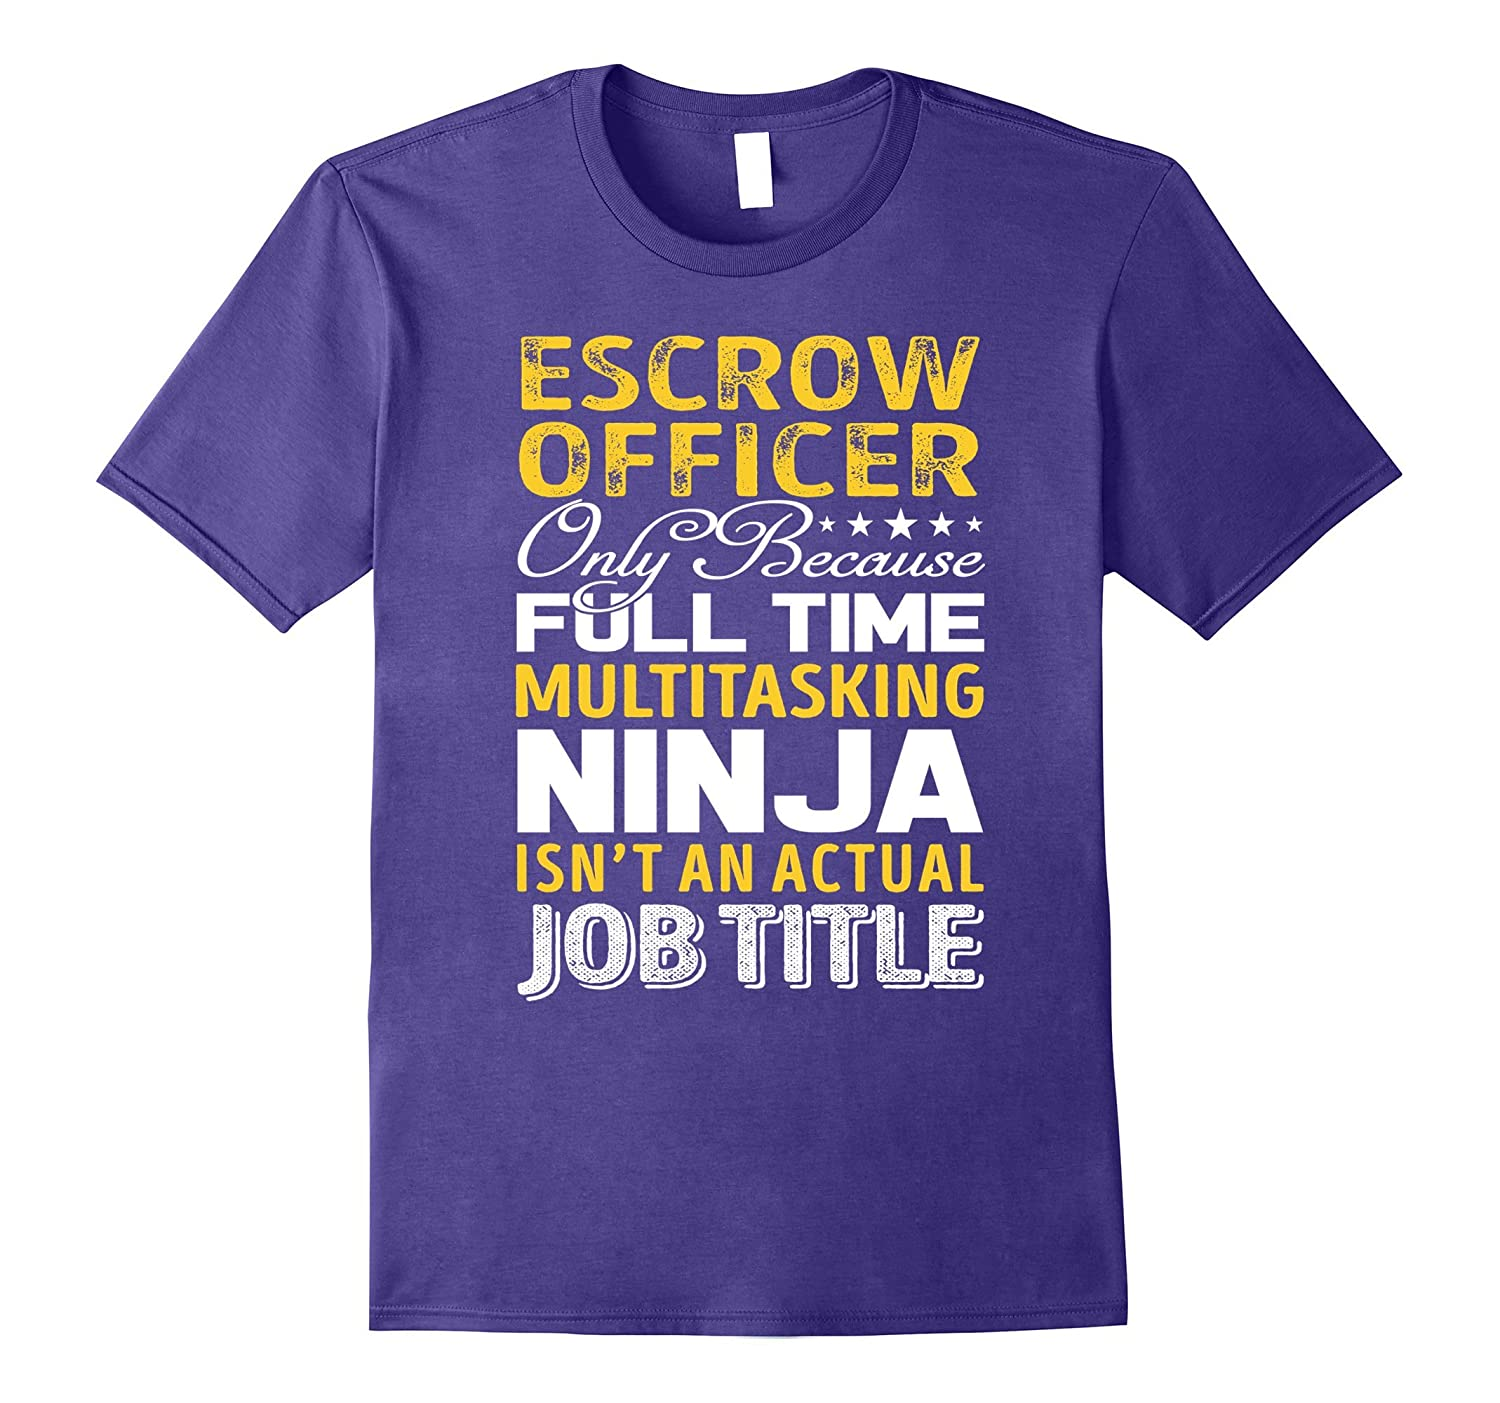 Escrow Officer Is Not An Actual Job Title TShirt-FL